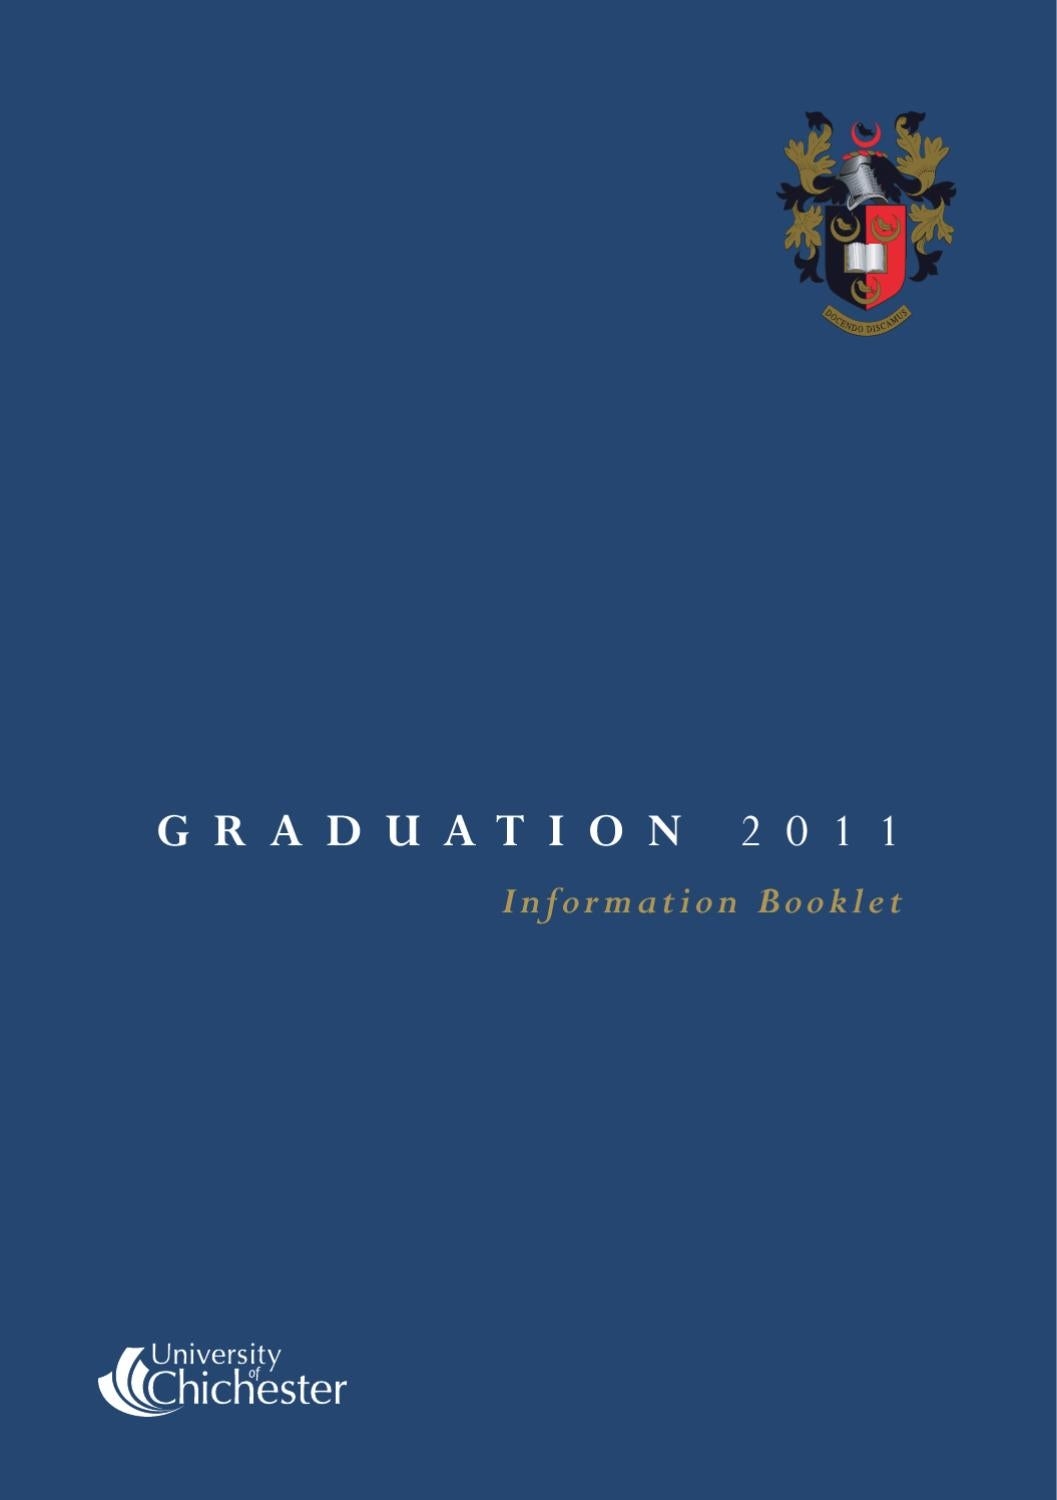 Graduation 2011 Information Booklet By University Of